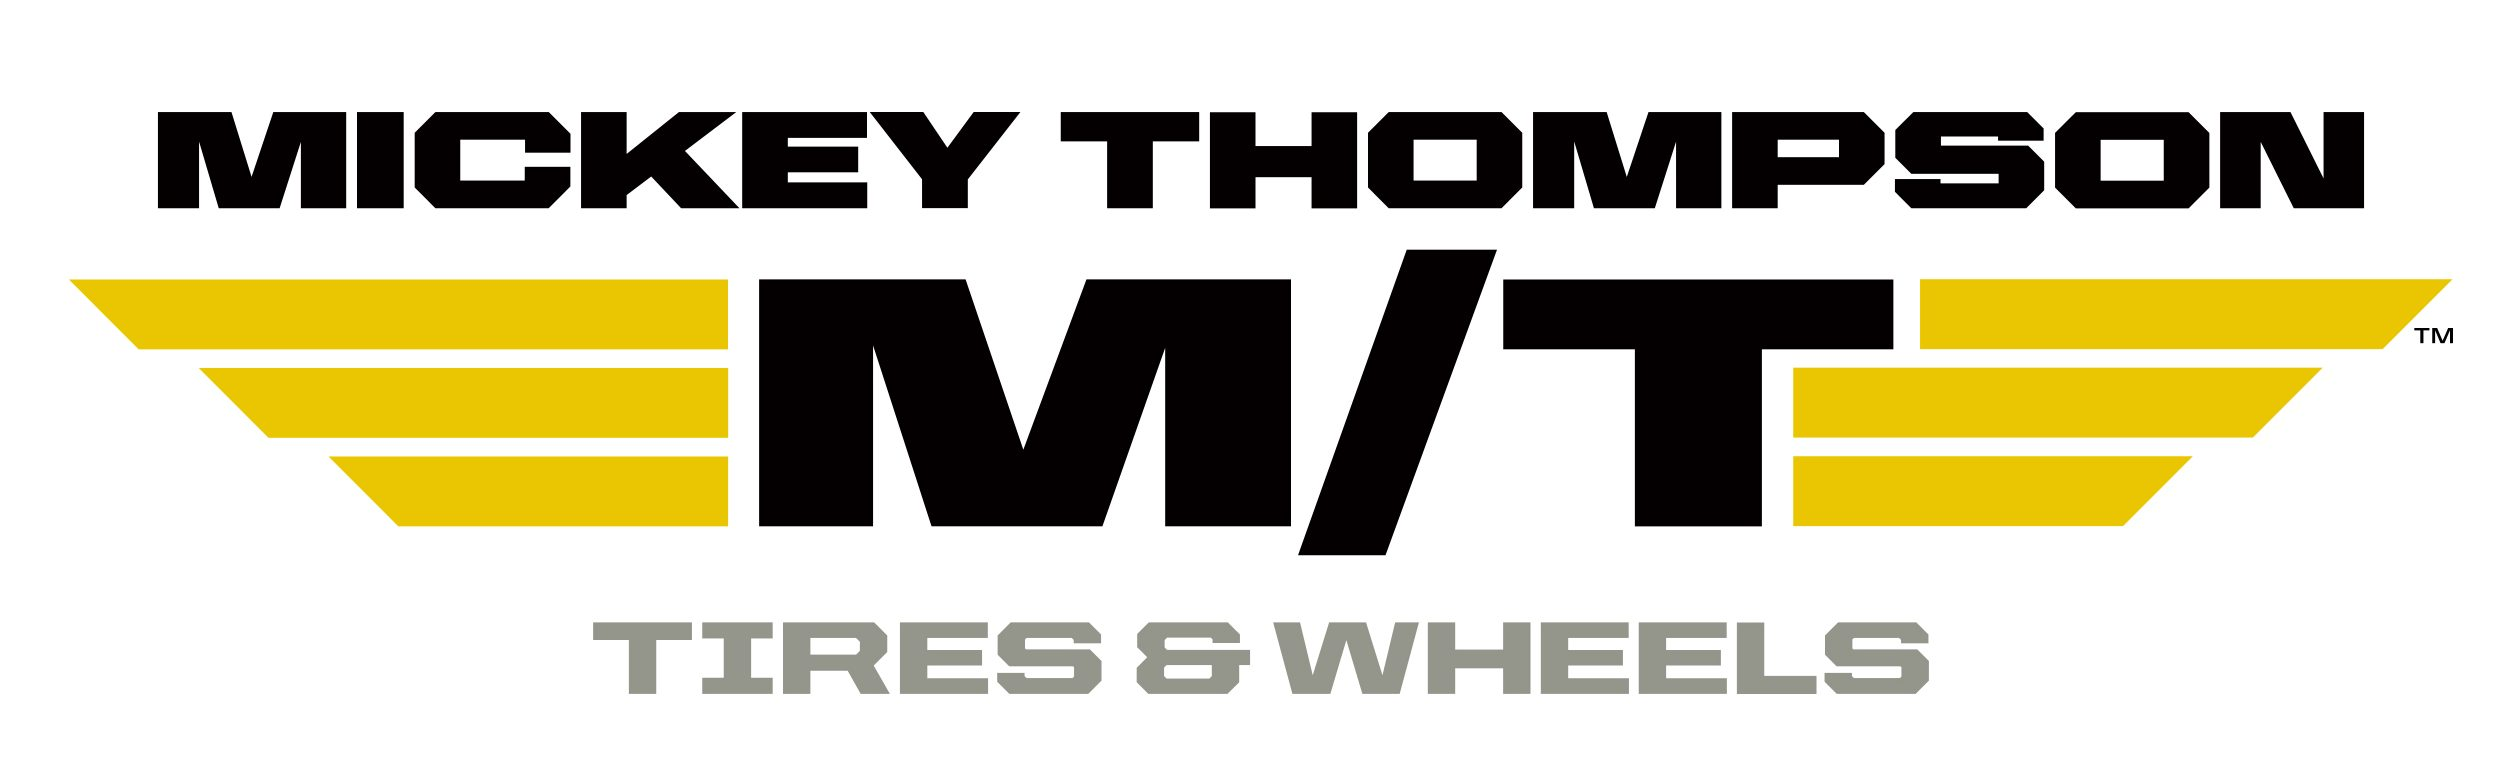 Mickey-Thompson Tires